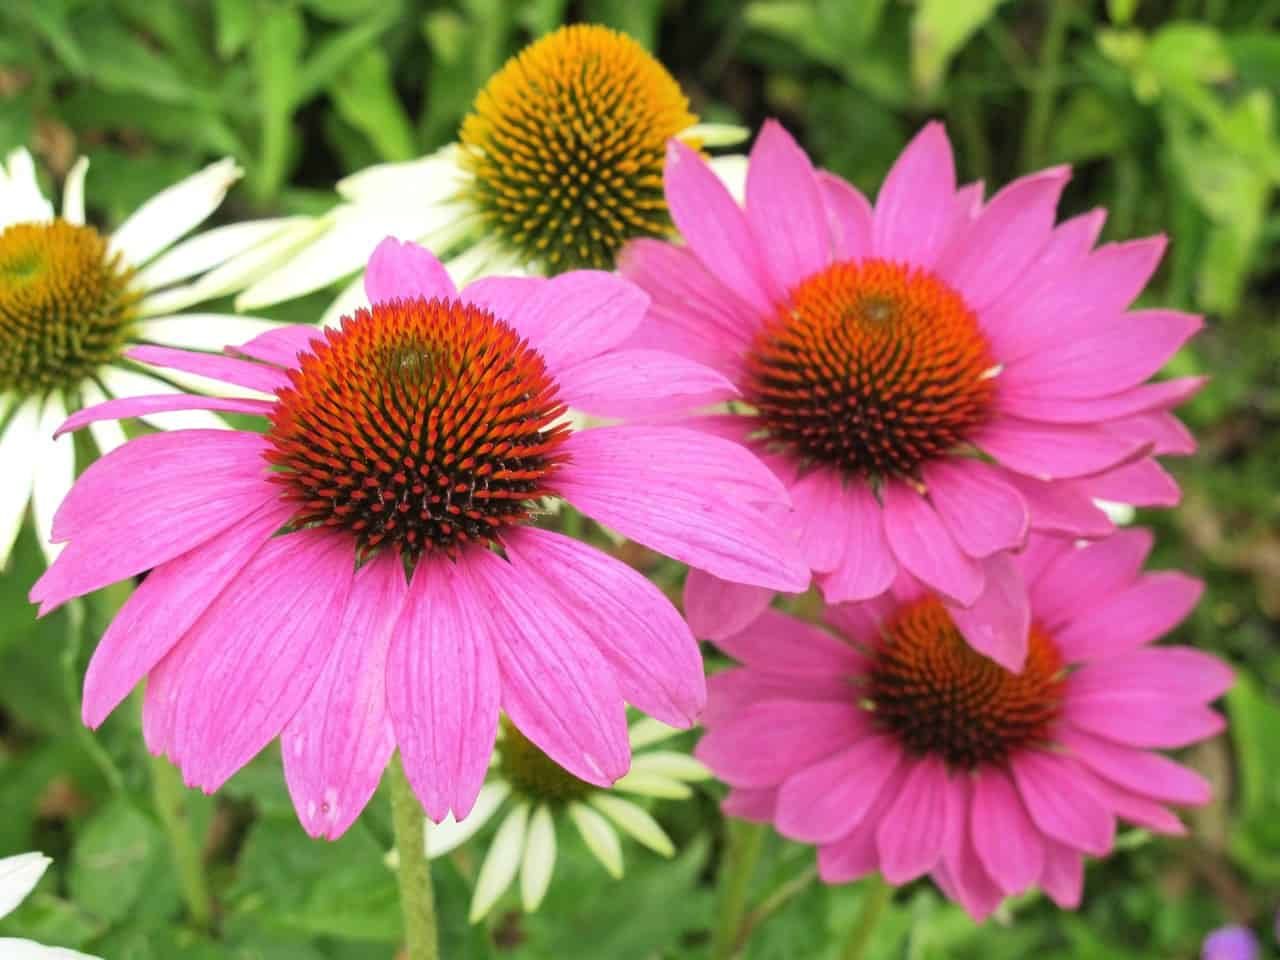 echinacea is better known as a coneflower